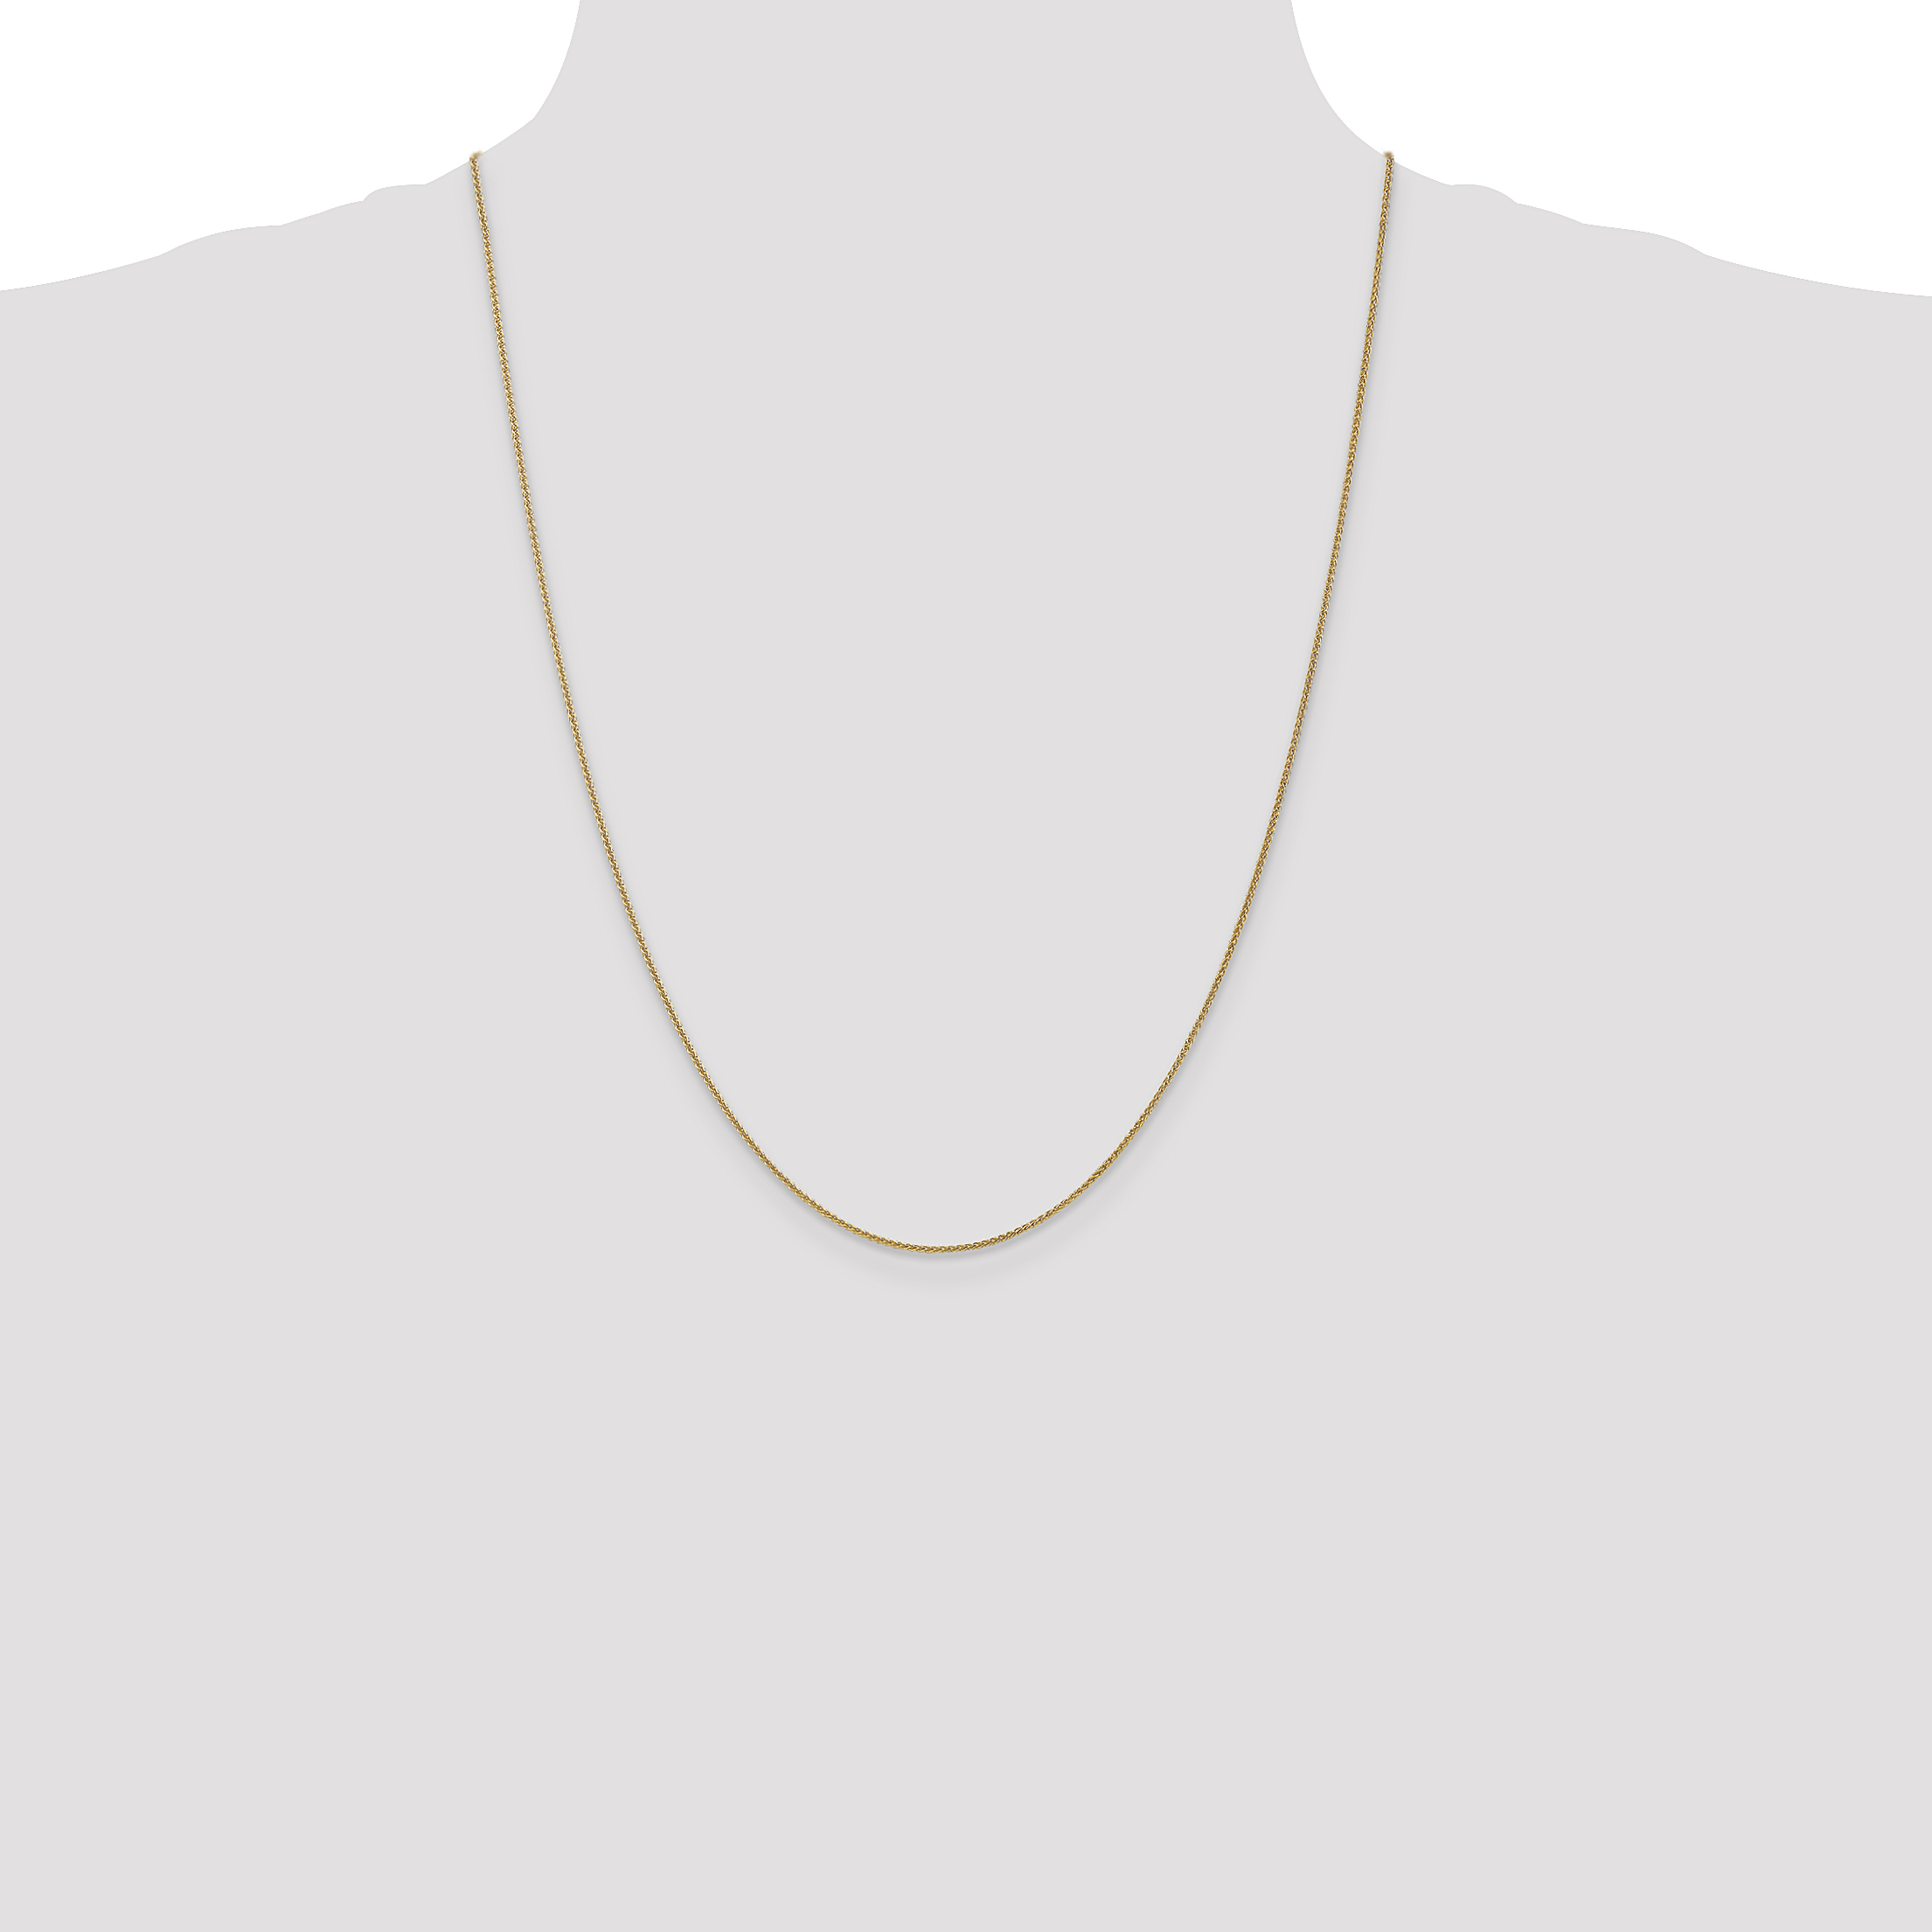 14k Yellow Gold 1mm Solid Spiga Chain Necklace 24 Inch Pendant Charm Wheat Fine Jewelry Gifts For Women For Her - image 1 of 5